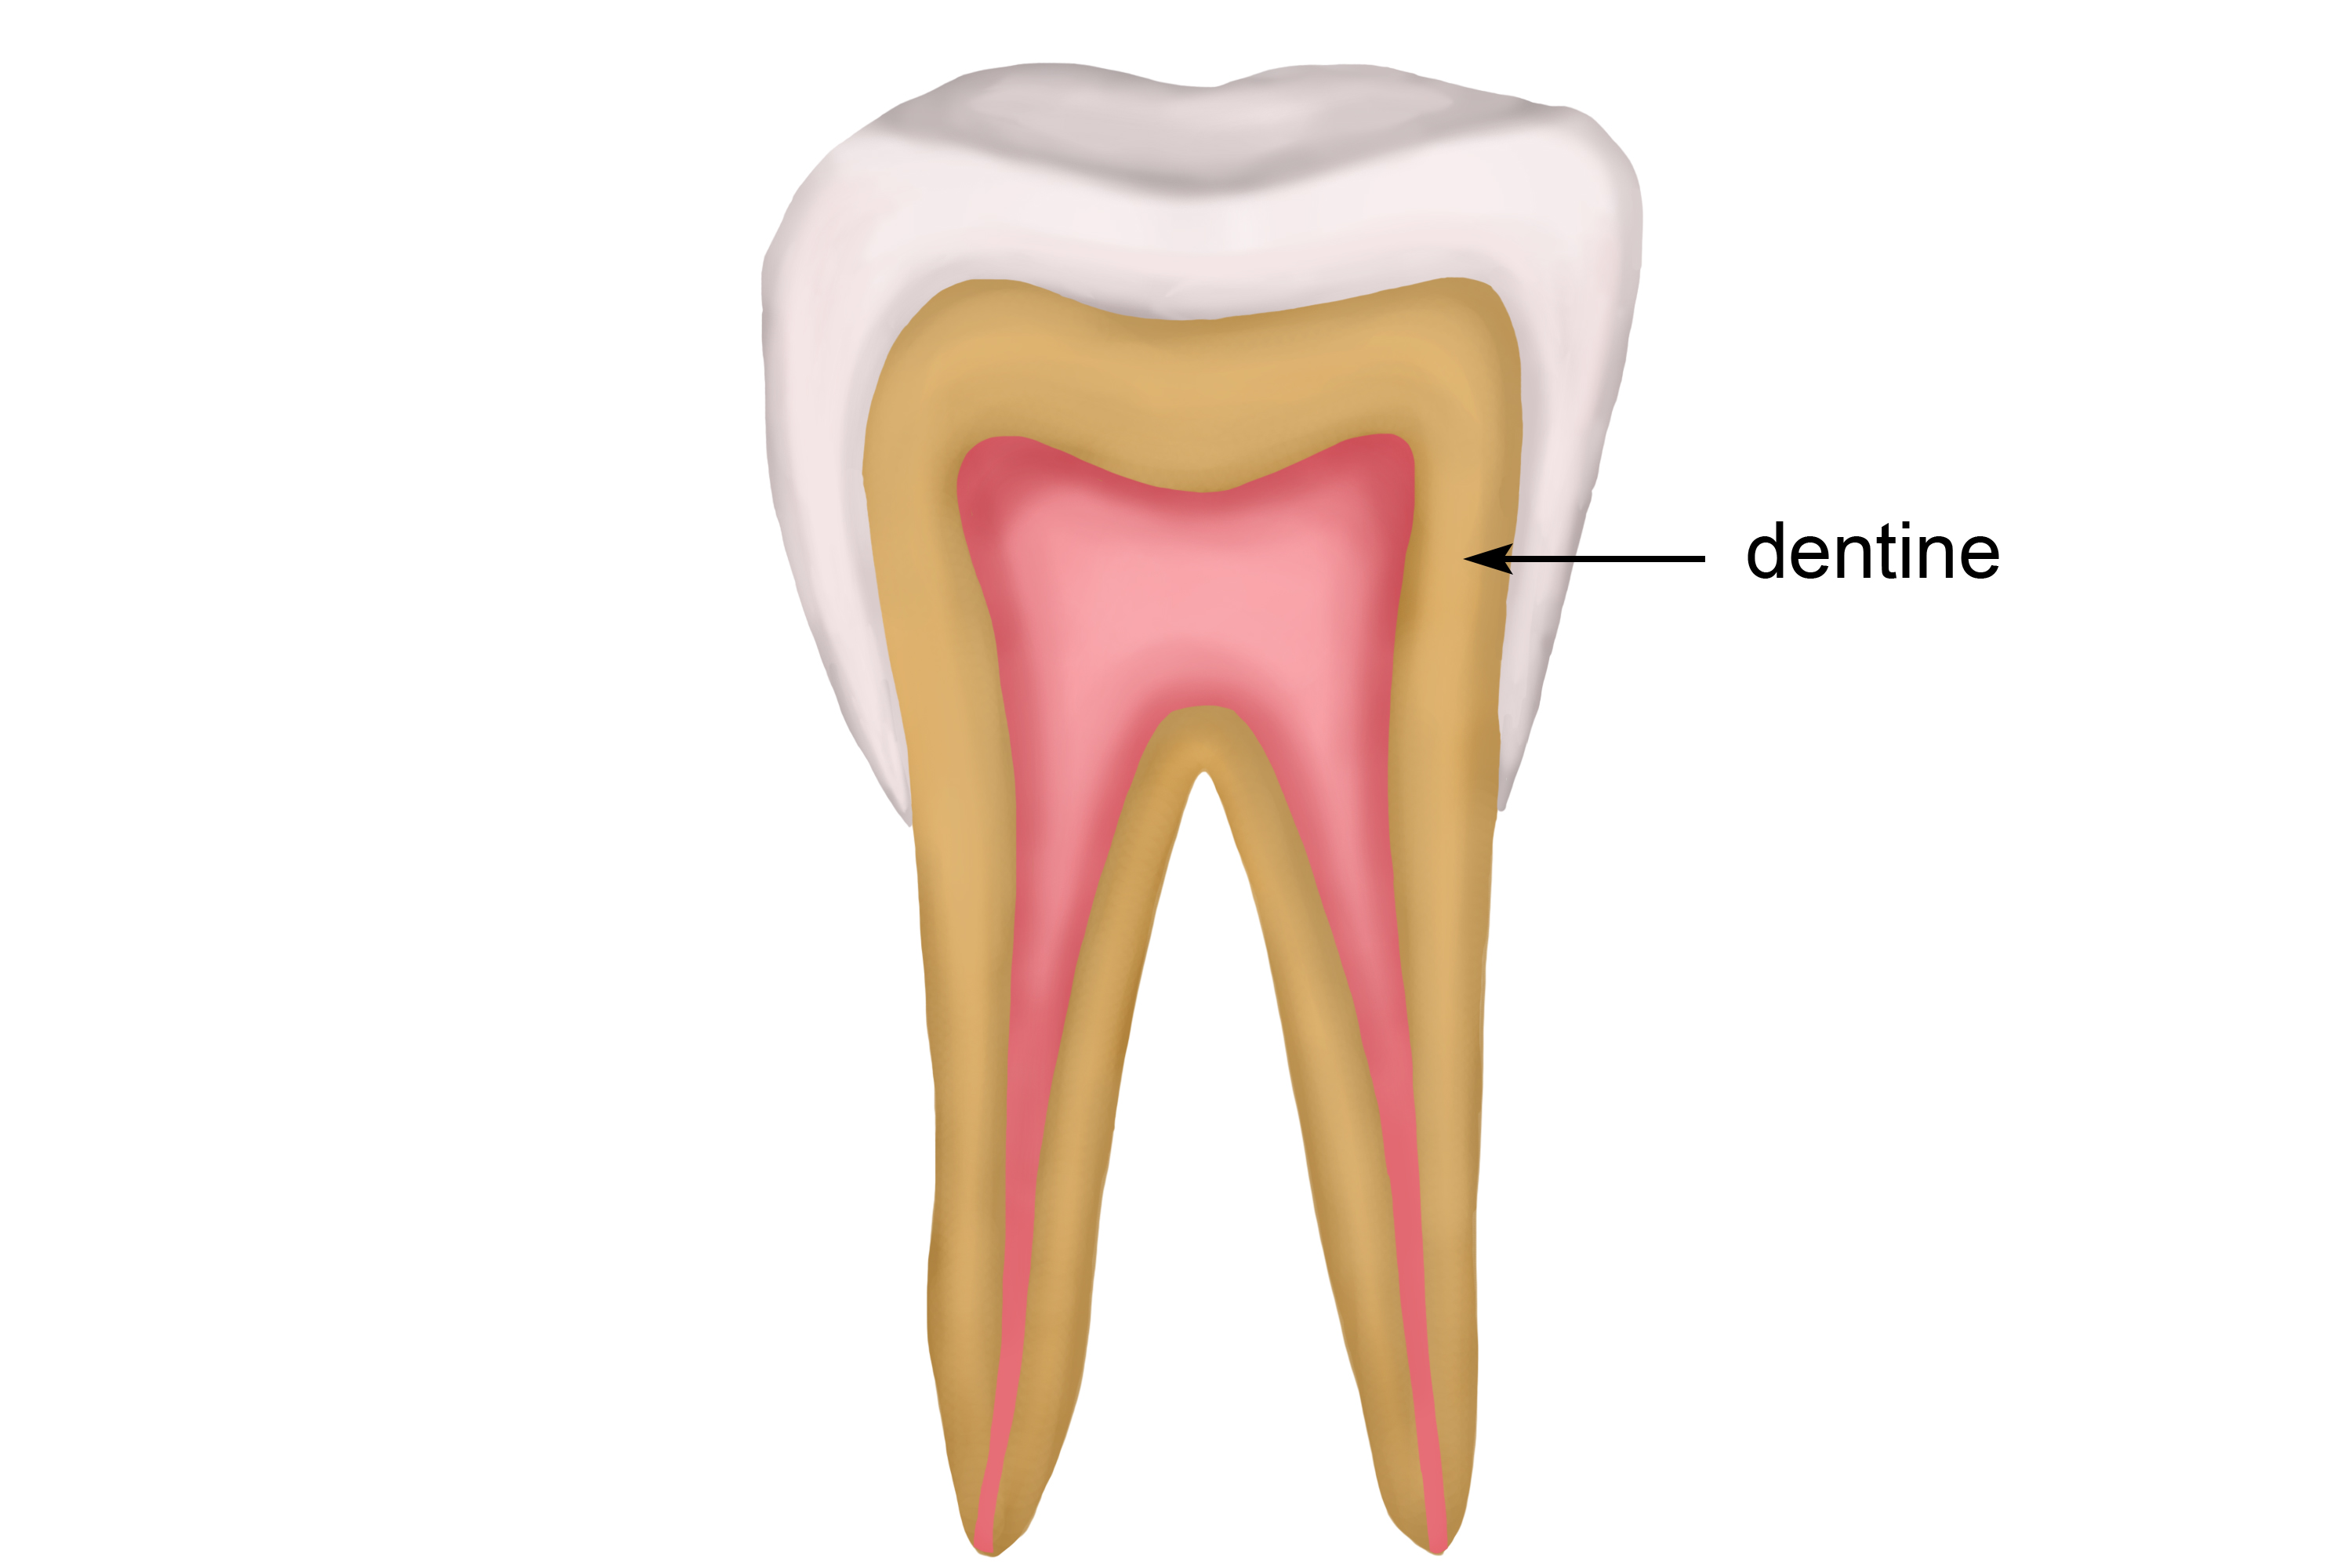 Main structure of the tooth which is harder than bone but softer than enamel